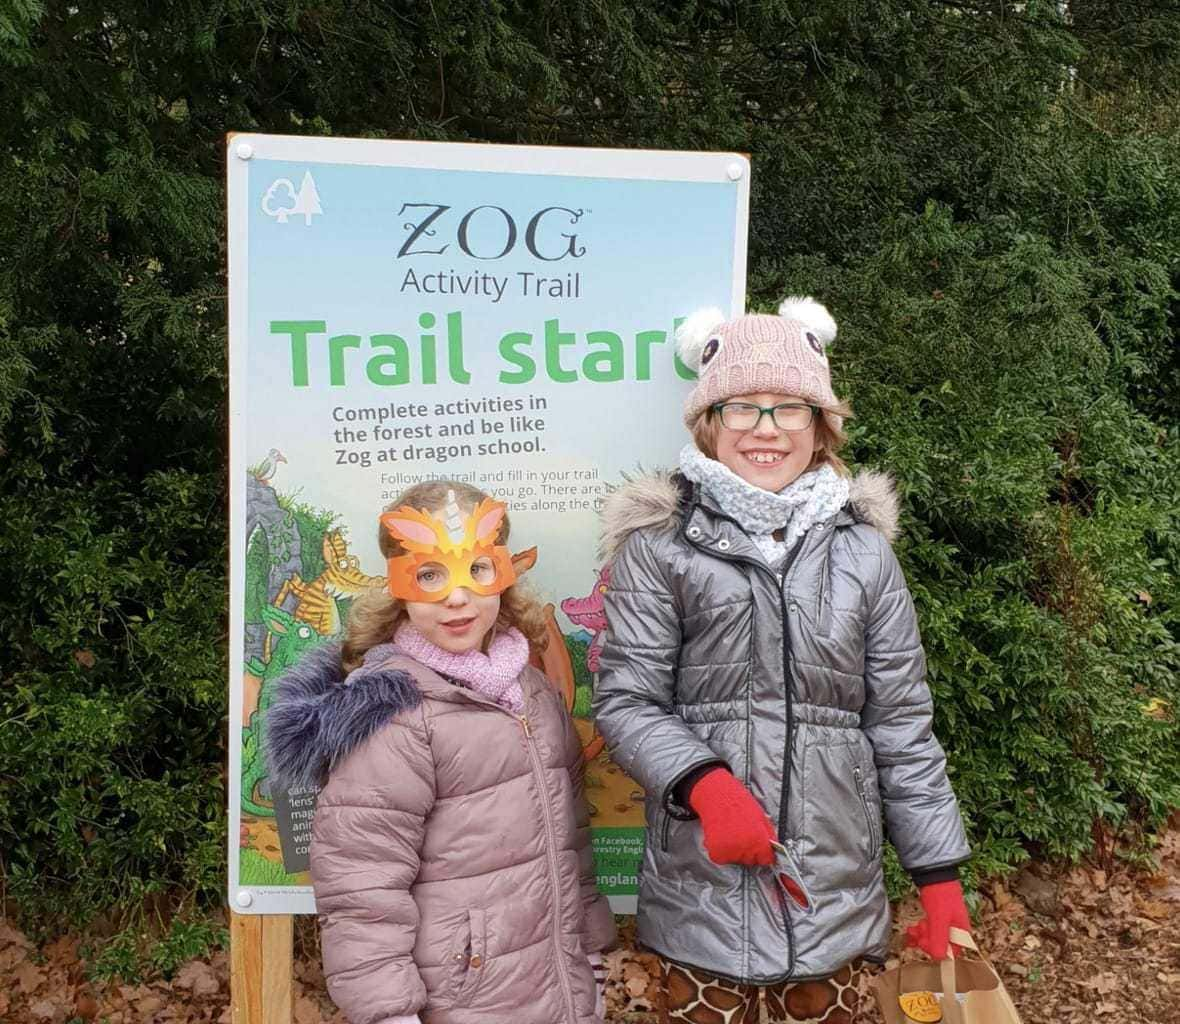 FREE Activity Trail: Zog is the new Forestry Commission Trail